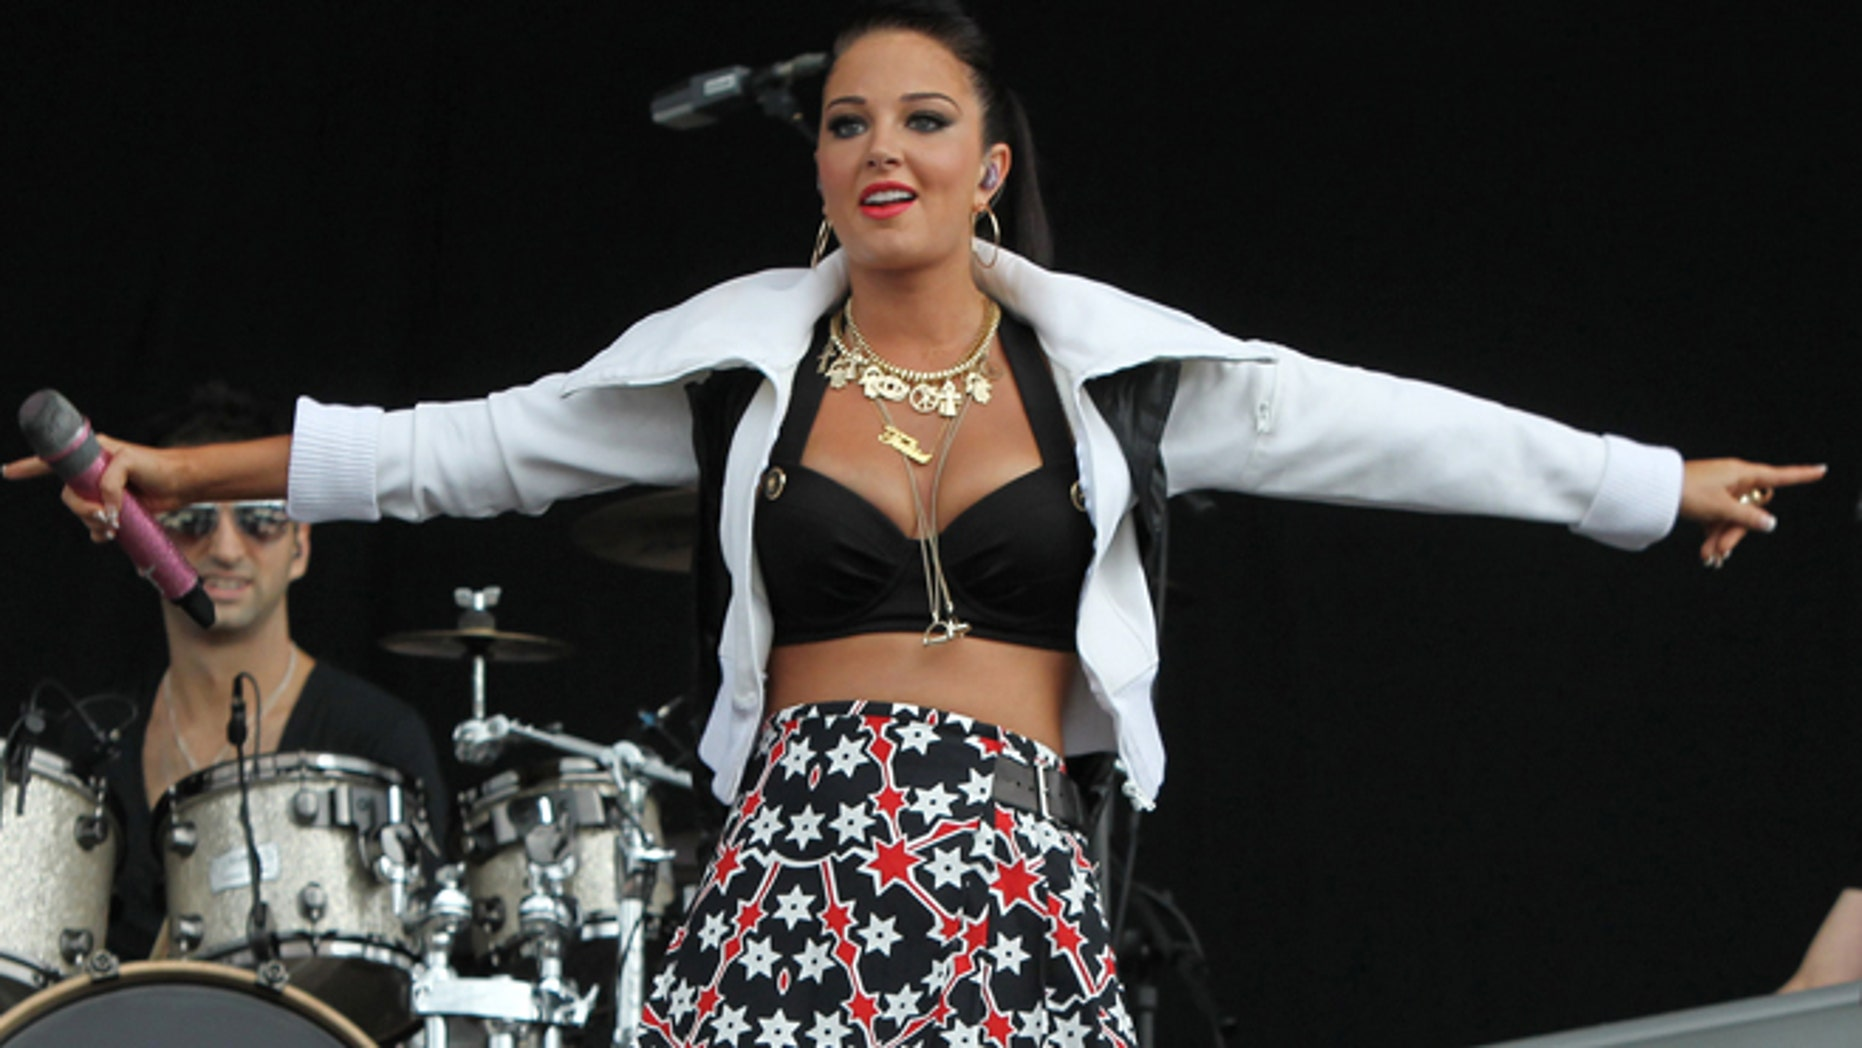 A Saturday, July 7, 2012 photo from files showing British singer Tulisa Contostavlos performing on stage at the 2012 Wireless Music Festival in Hyde Park, central London.